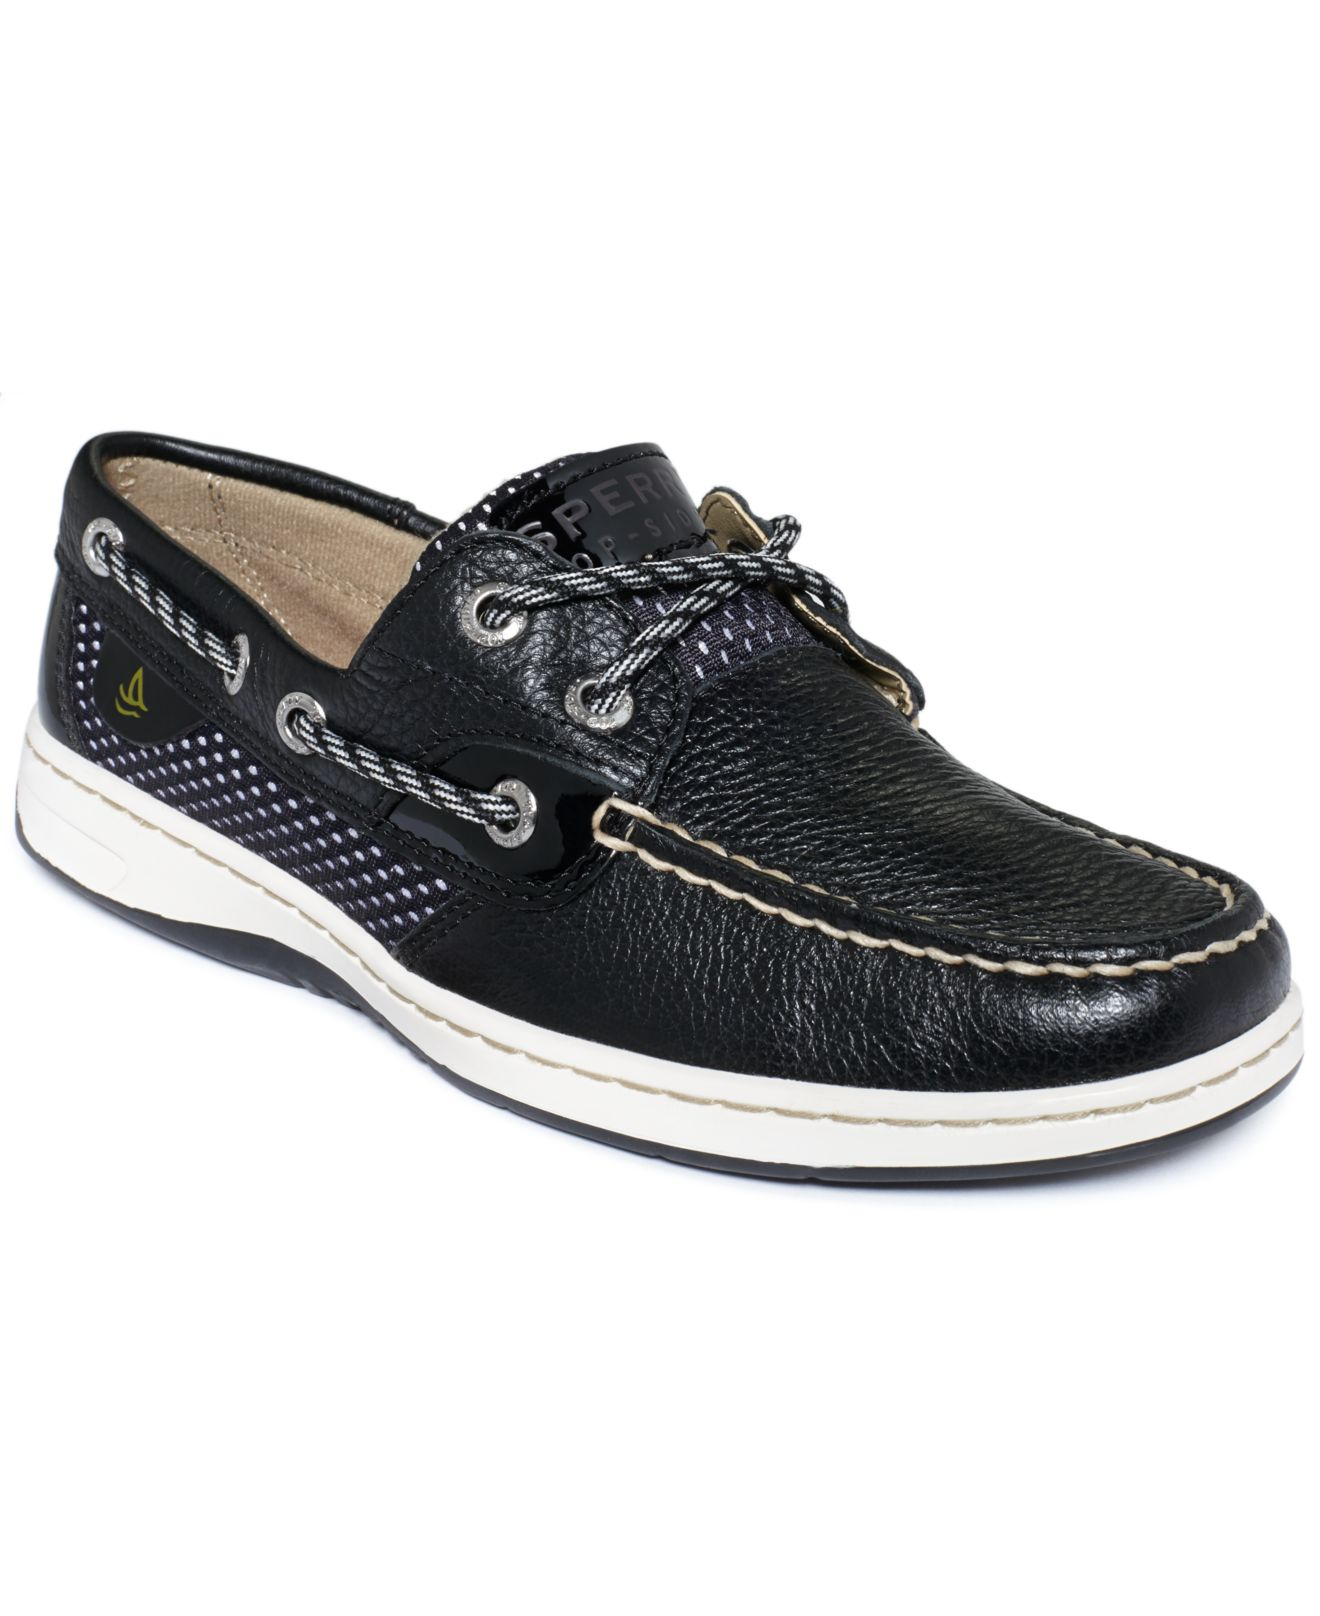 Sperry top-sider Sperry Women'S Bluefish Boat Shoes in Black | Lyst